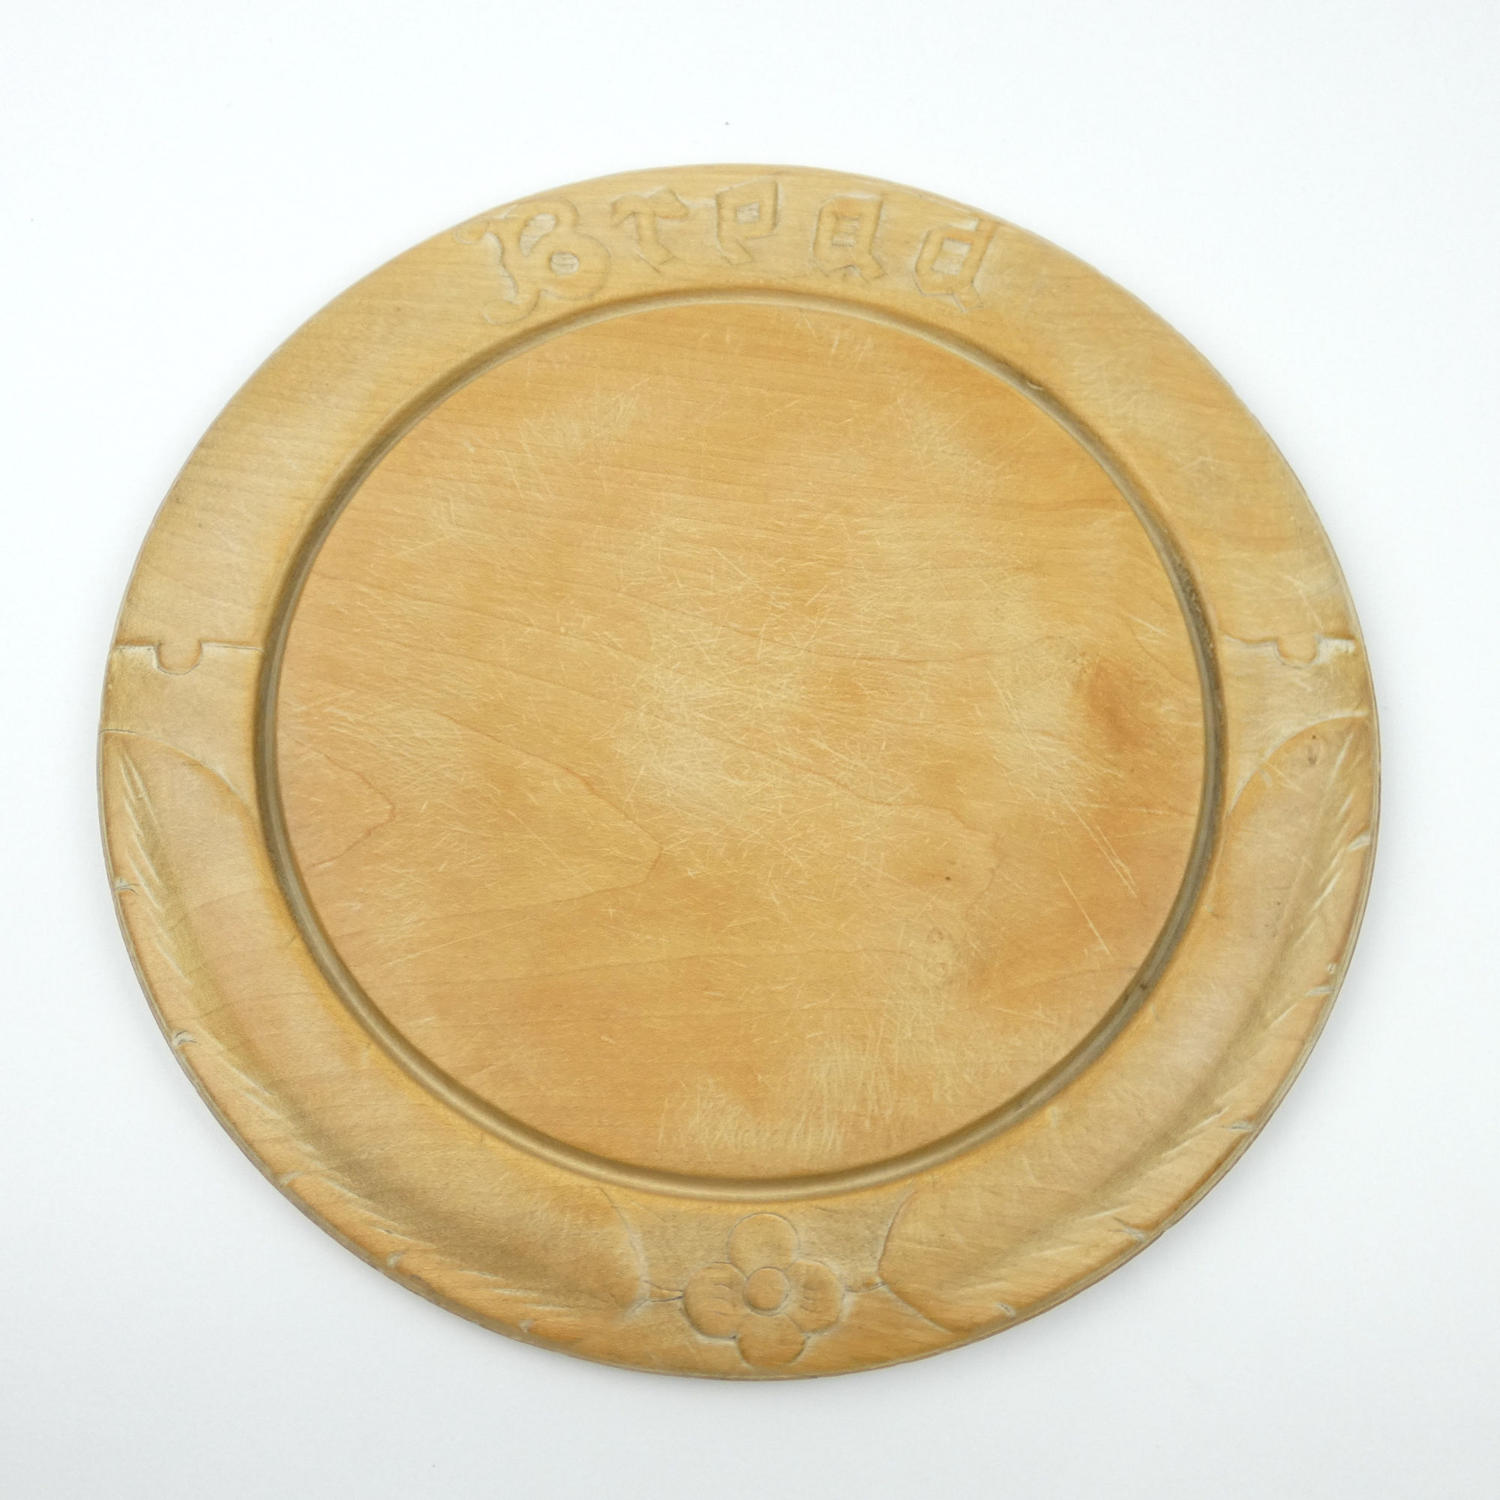 'Bread' Board